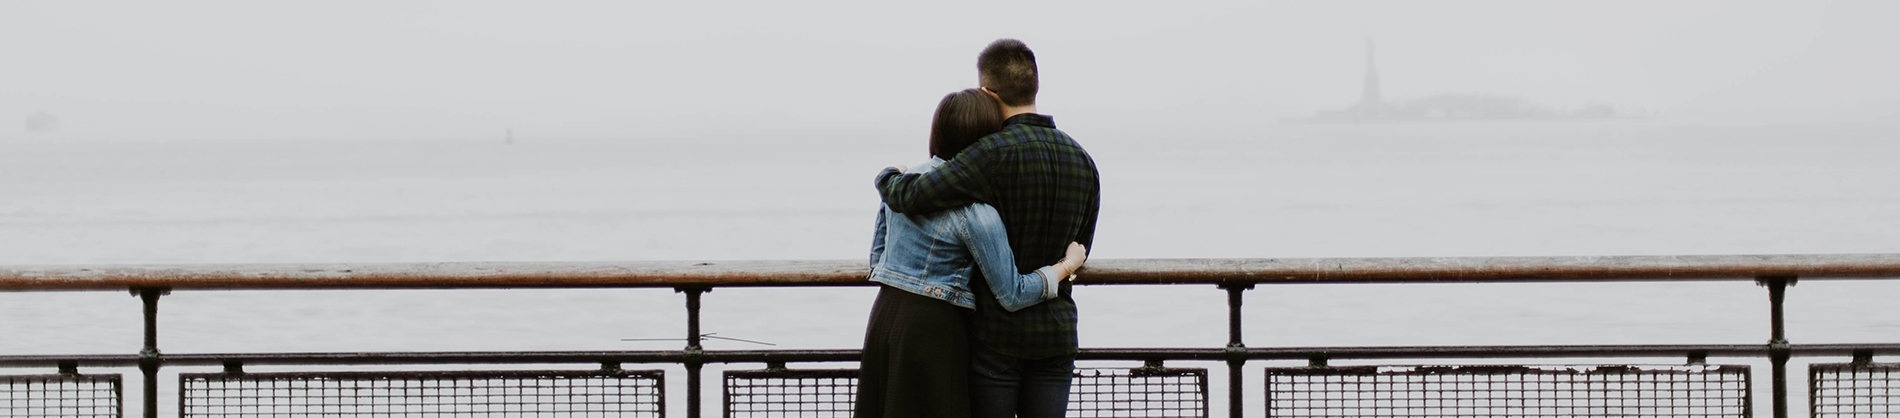 A couple hugging while looking out over railings to the sea